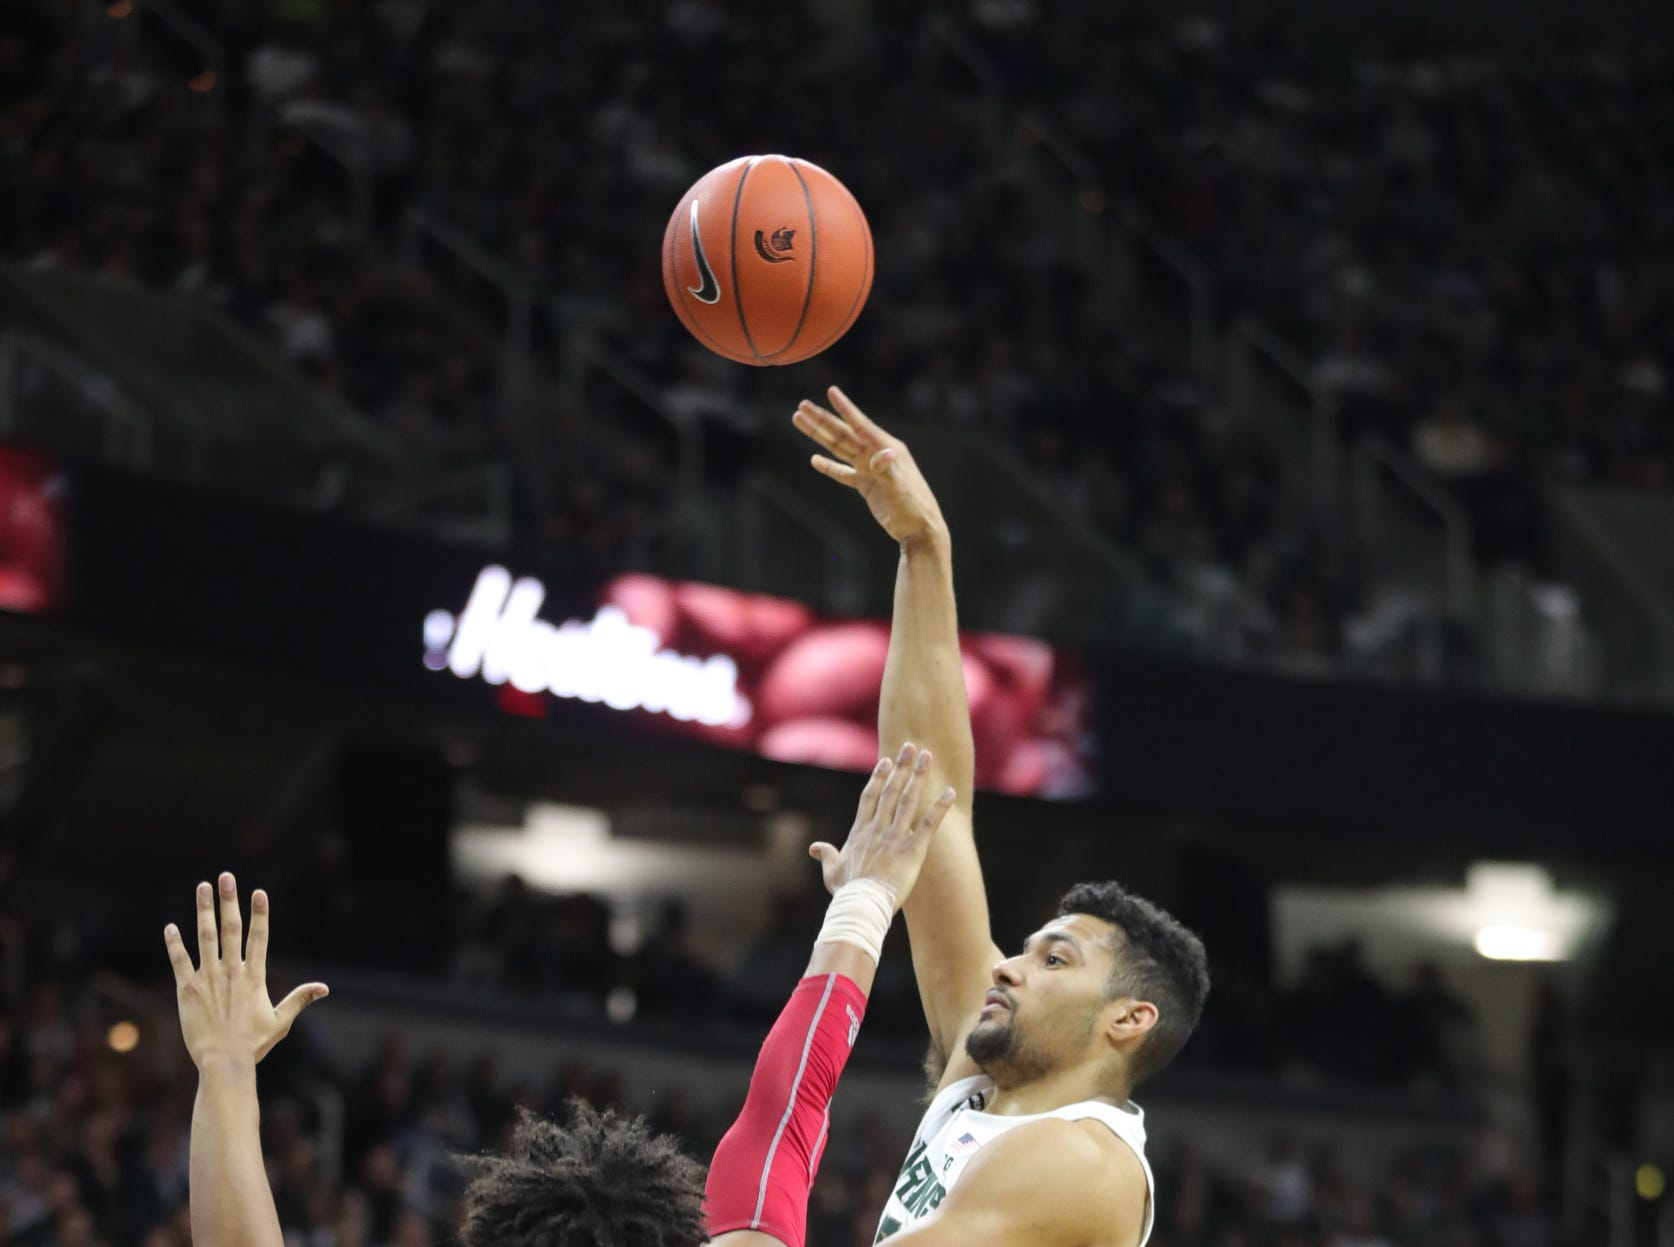 Michigan State forward Kenny Goins shoots against Indiana forward Justin Smith during first half action Saturday, Feb. 2, 2019 at the Breslin Center in East Lansing, Mich.